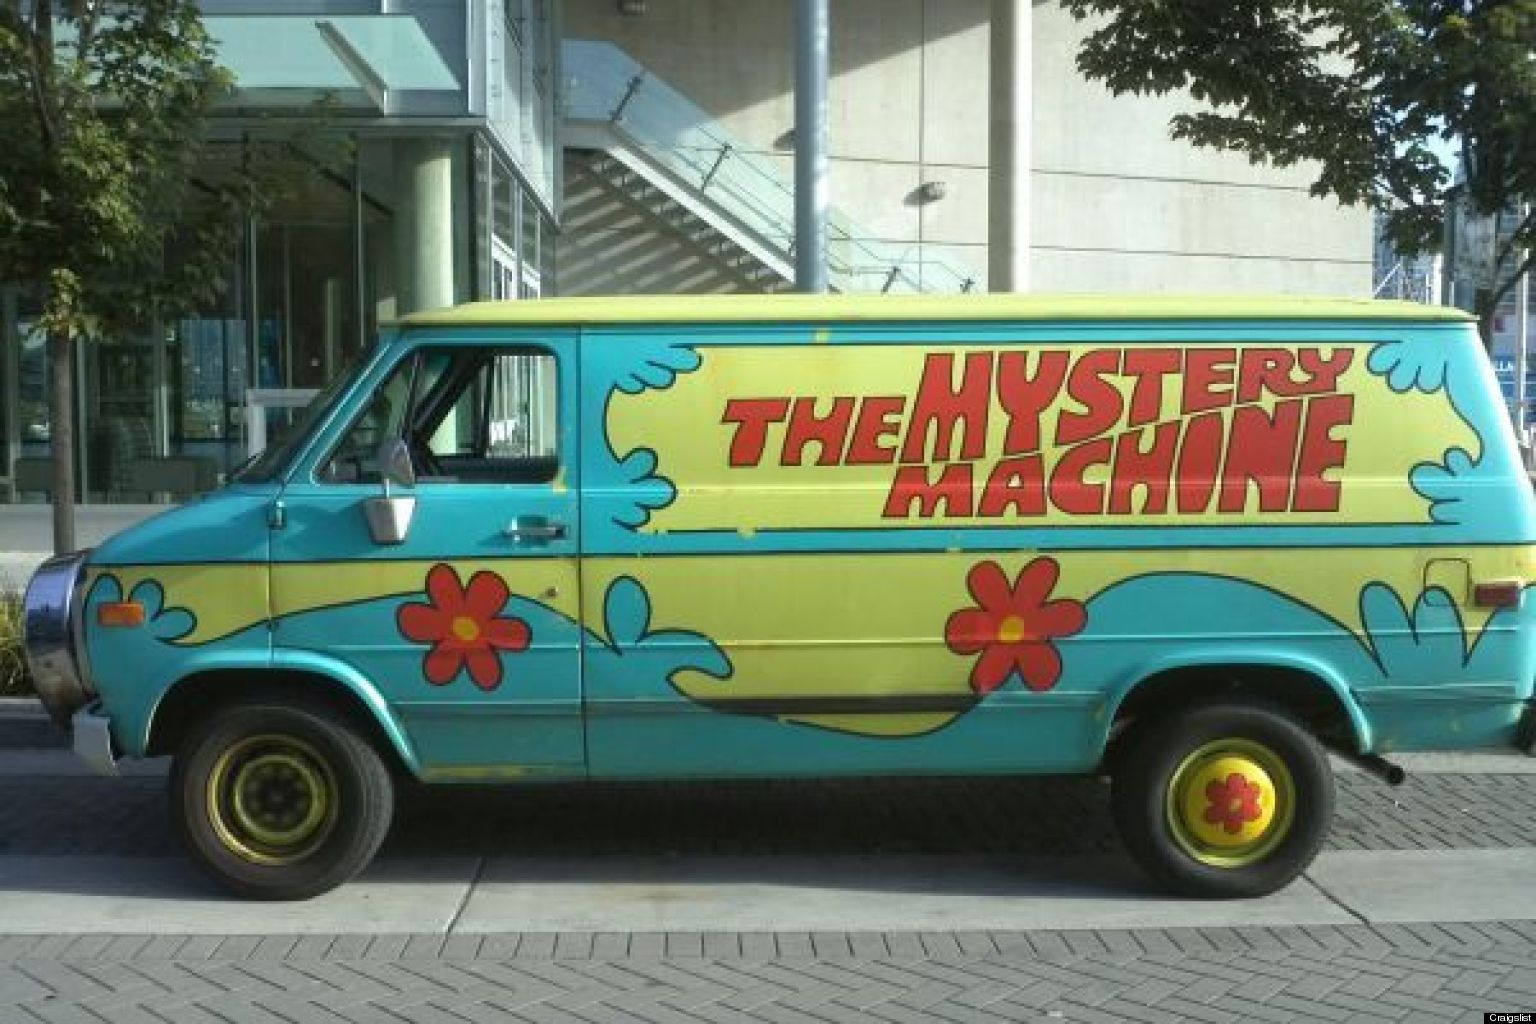 Mystery Machine For Sale Scooby Doo Van On Craigslist Ebay